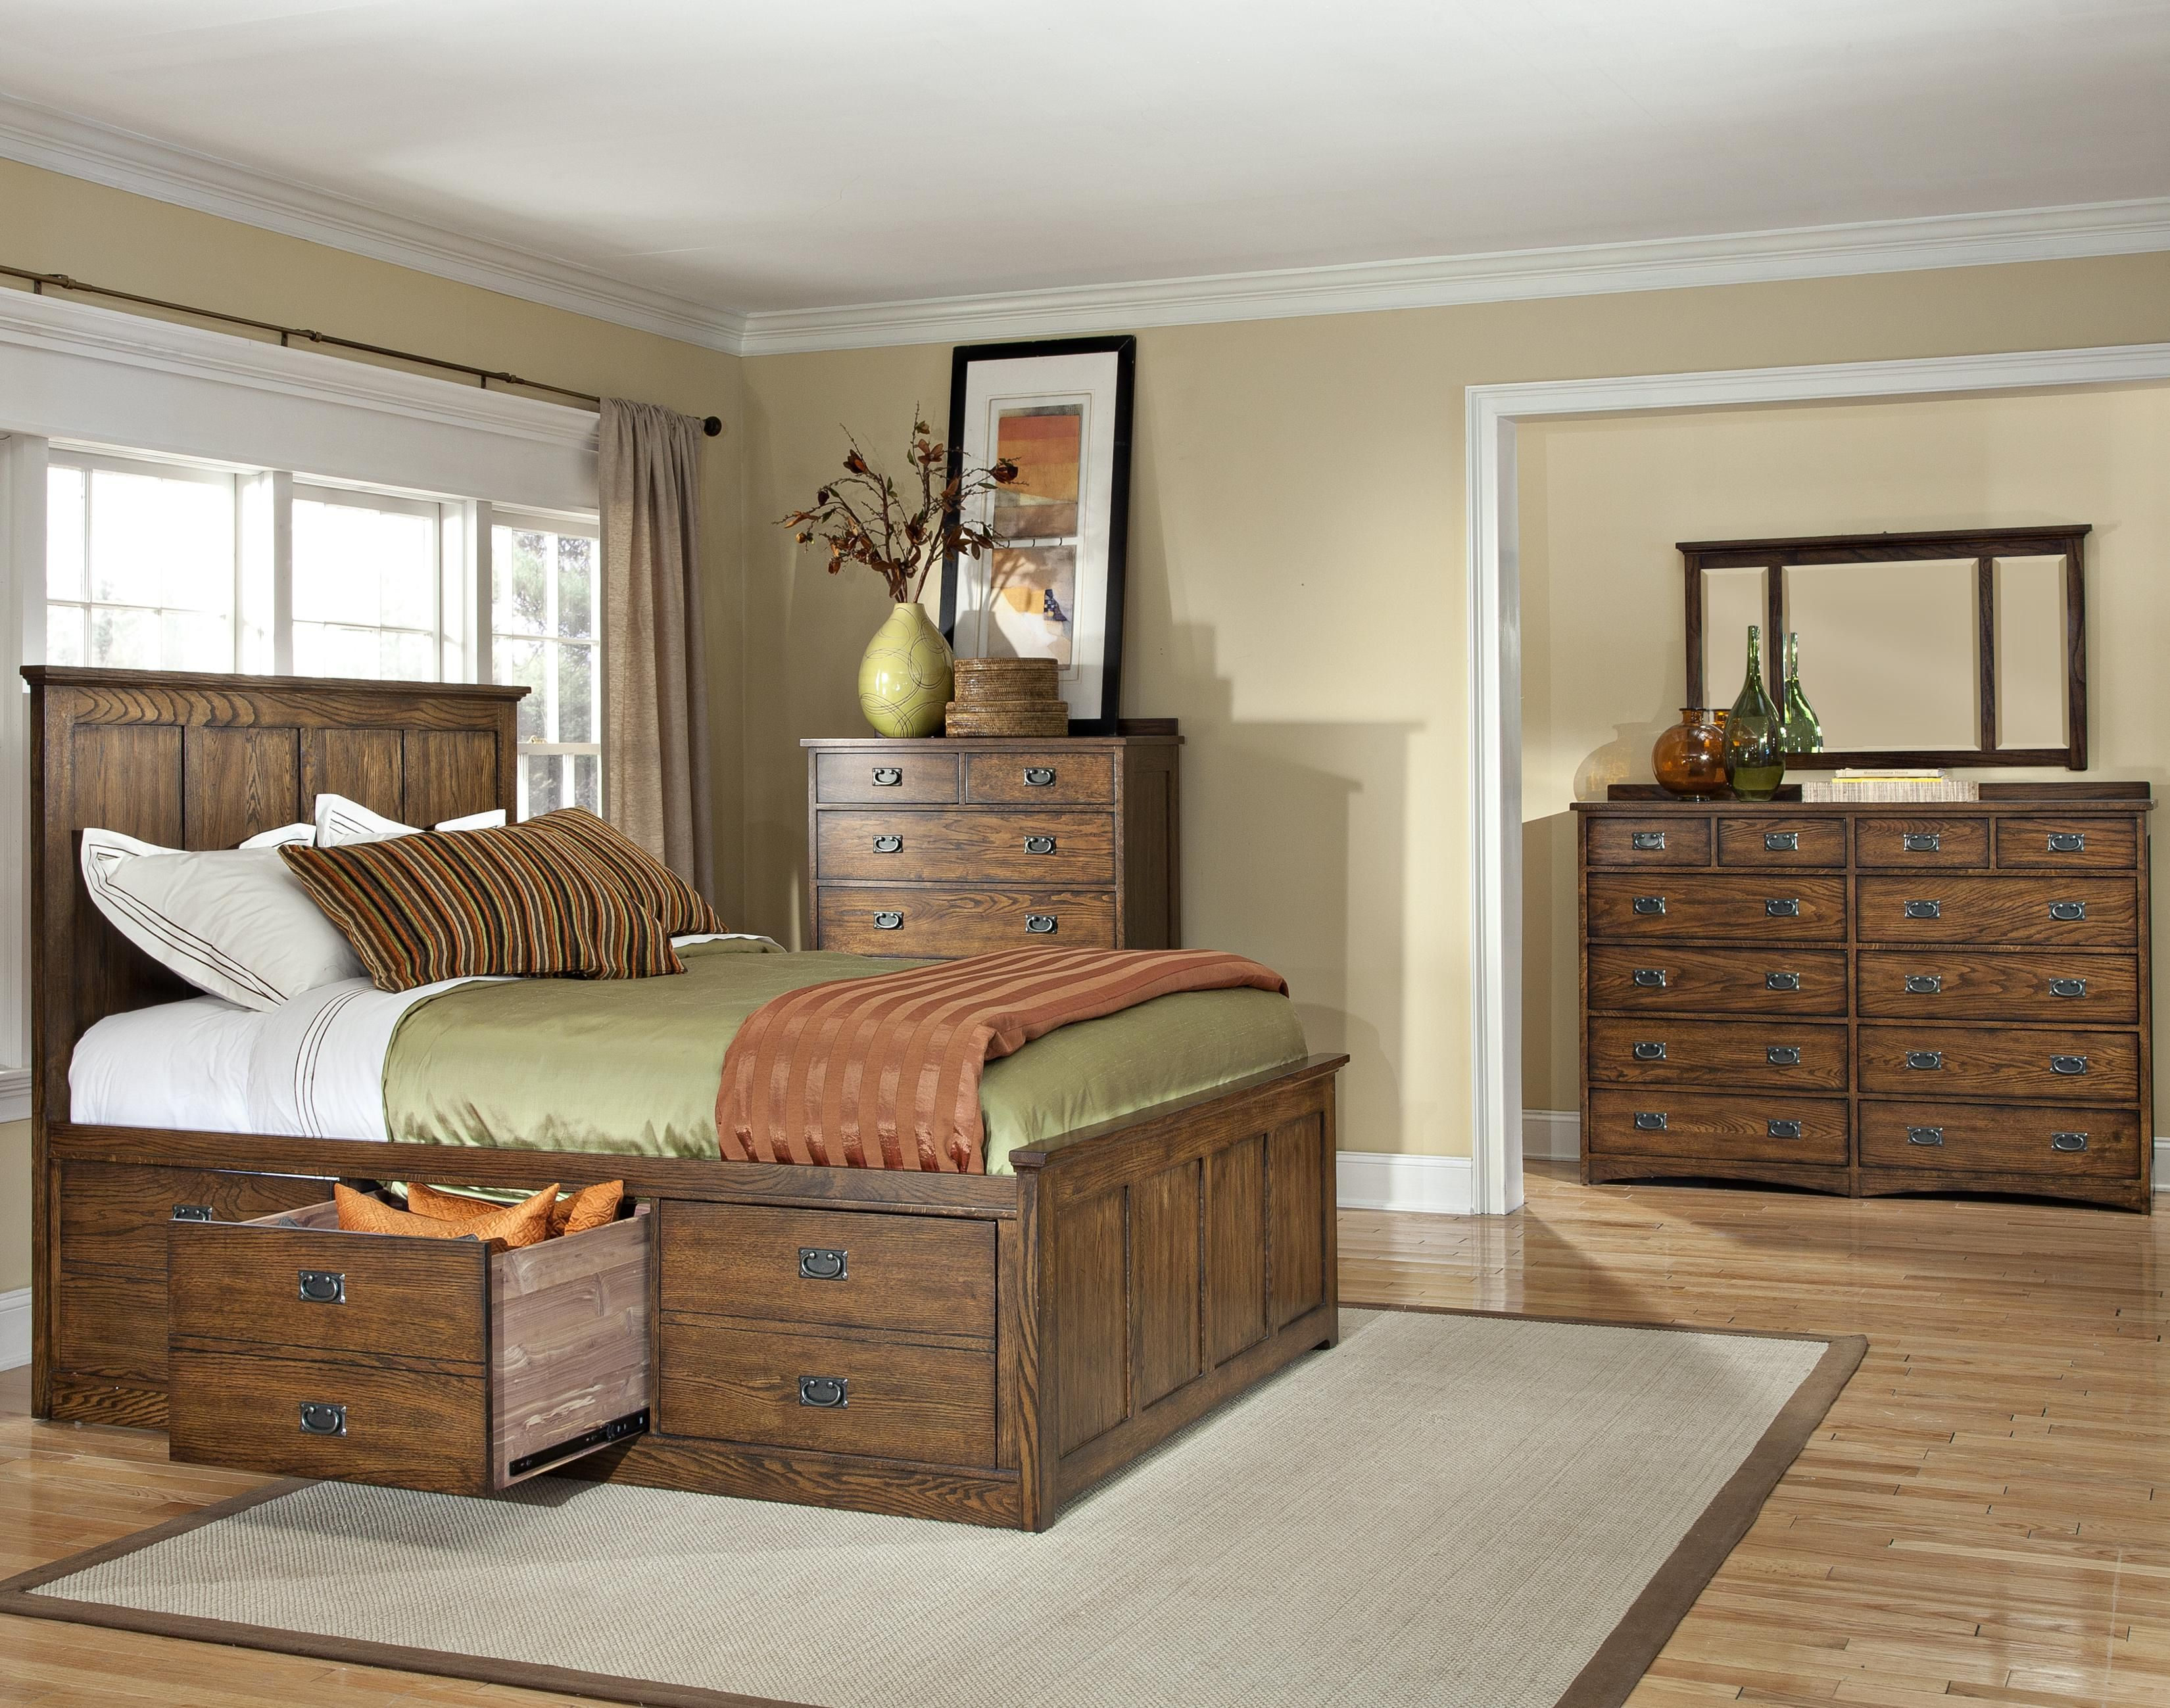 King Bed With Storage